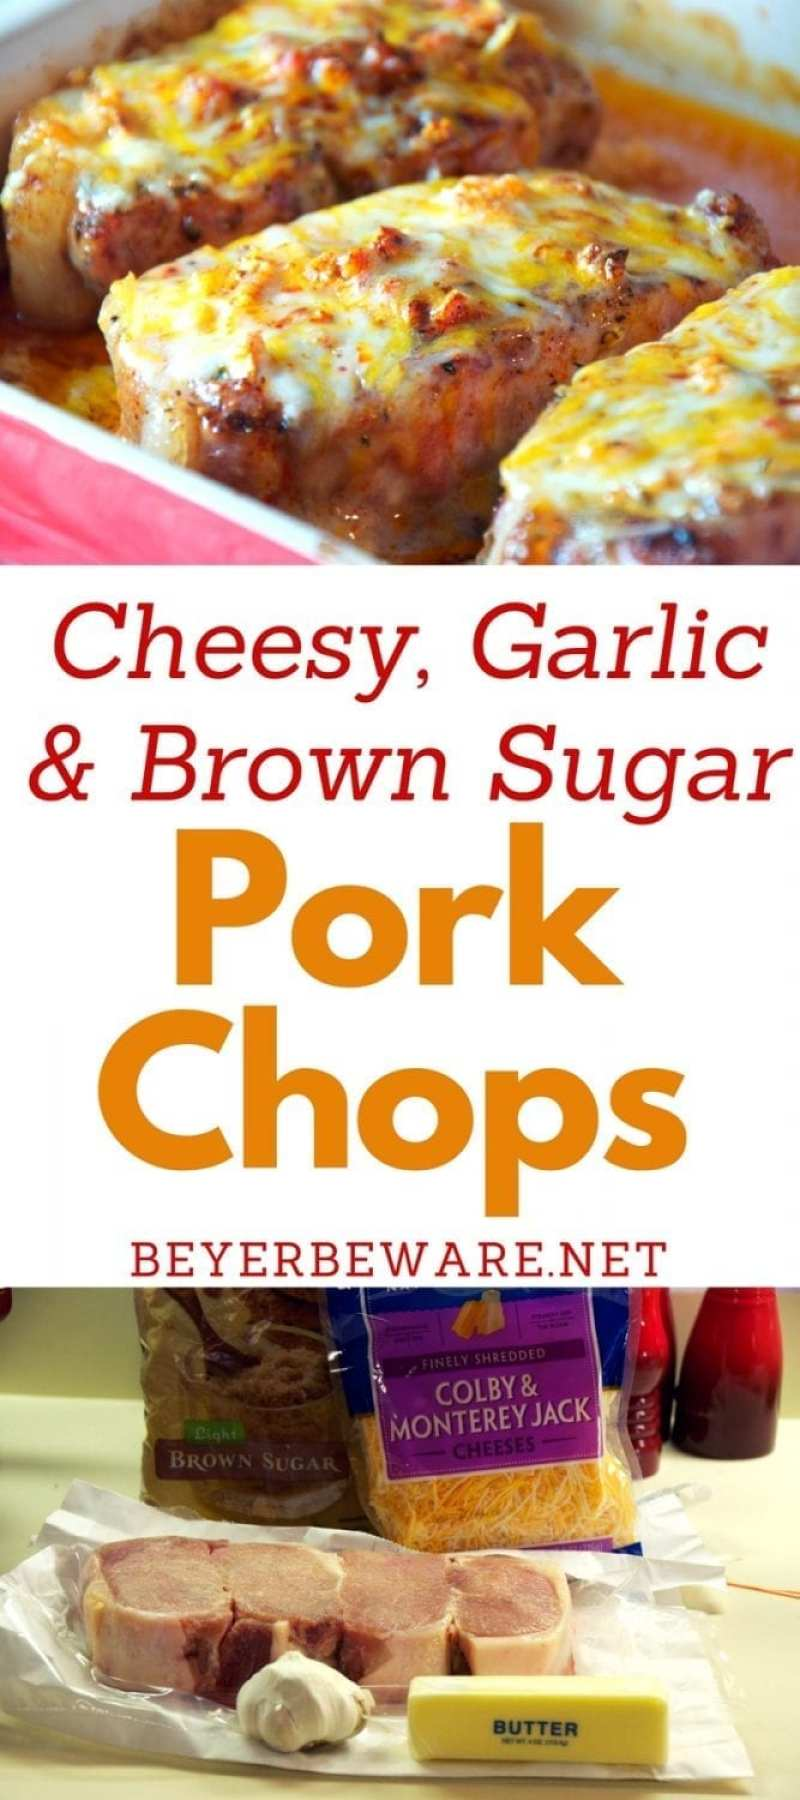 A quick baked pork chop recipe that is full of flavor from the brown sugar and garlic. Adding cheese to the last five minutes of baking make these cheesy garlic and brown sugar pork chops irresistible.